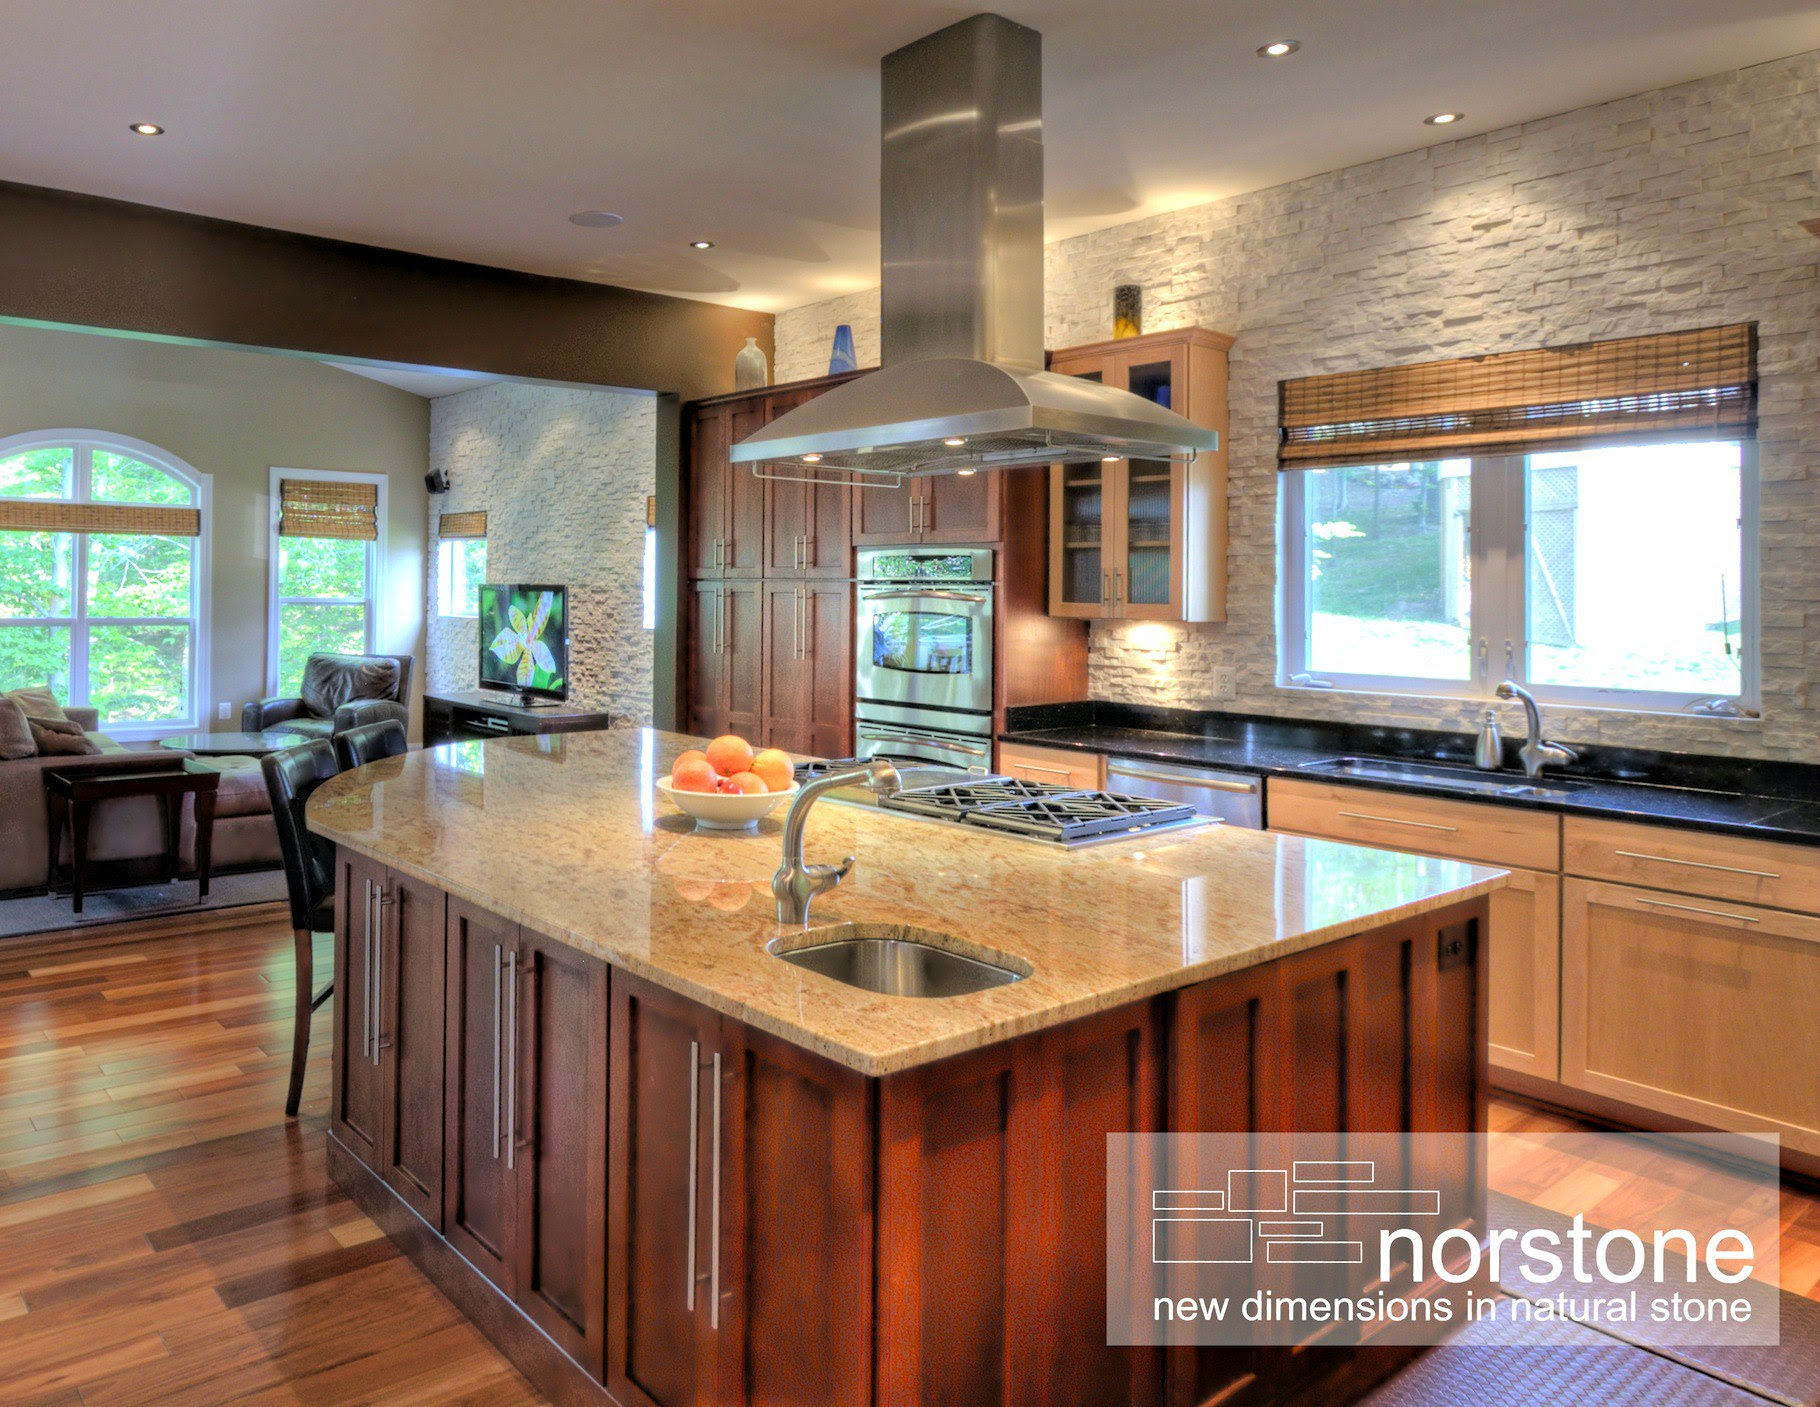 How to Install a Kitchen Backsplash | HomeSpot HQ Blog